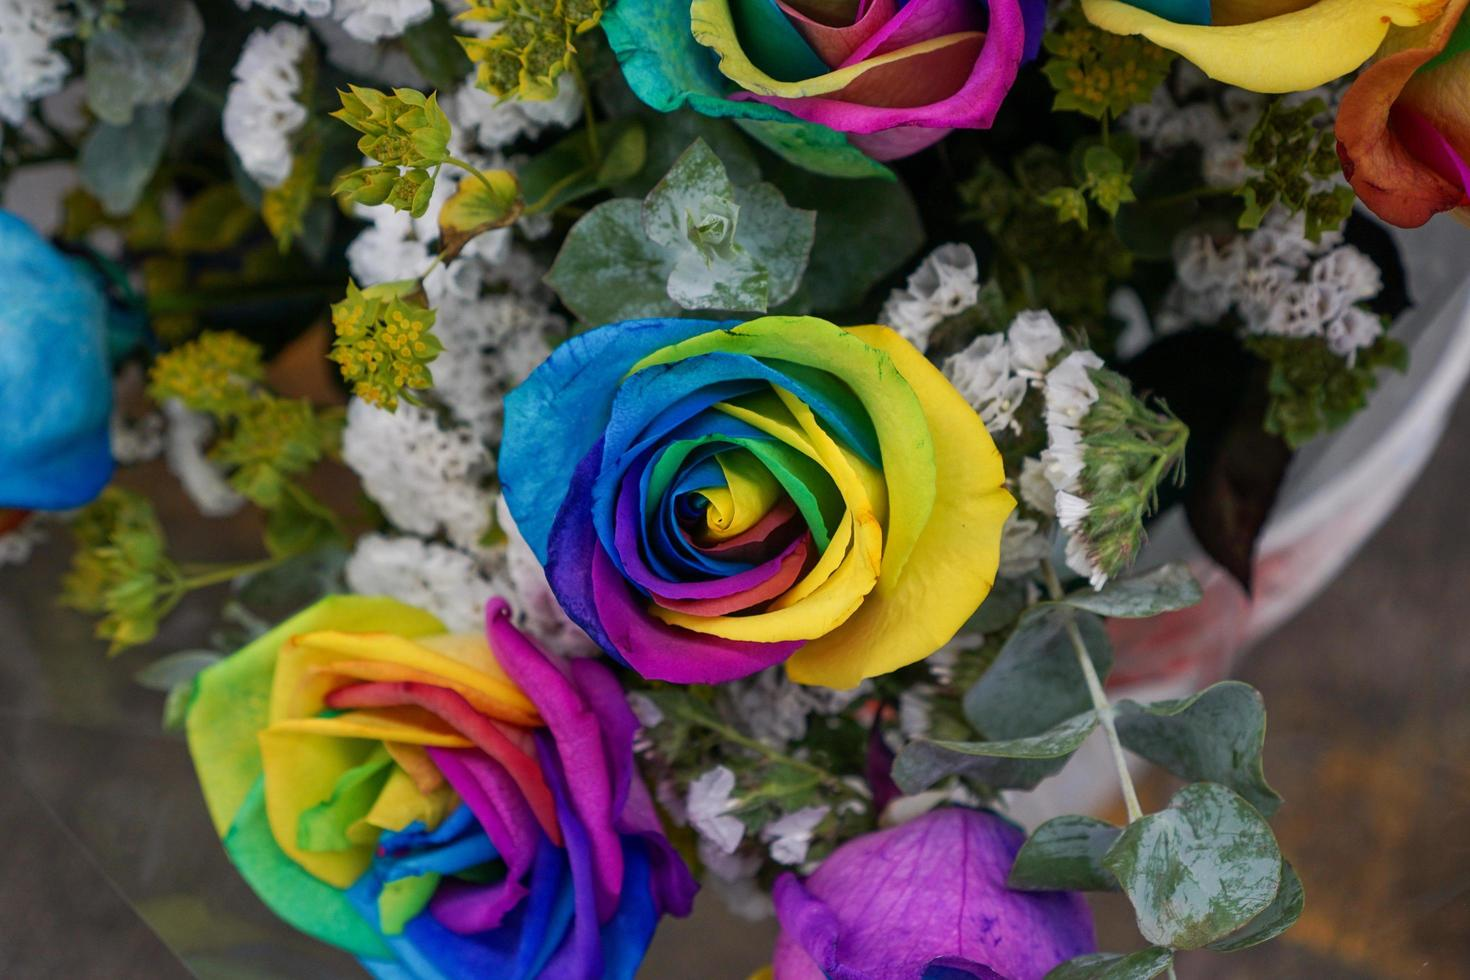 roses de couleur arc-en-ciel en bouquet photo